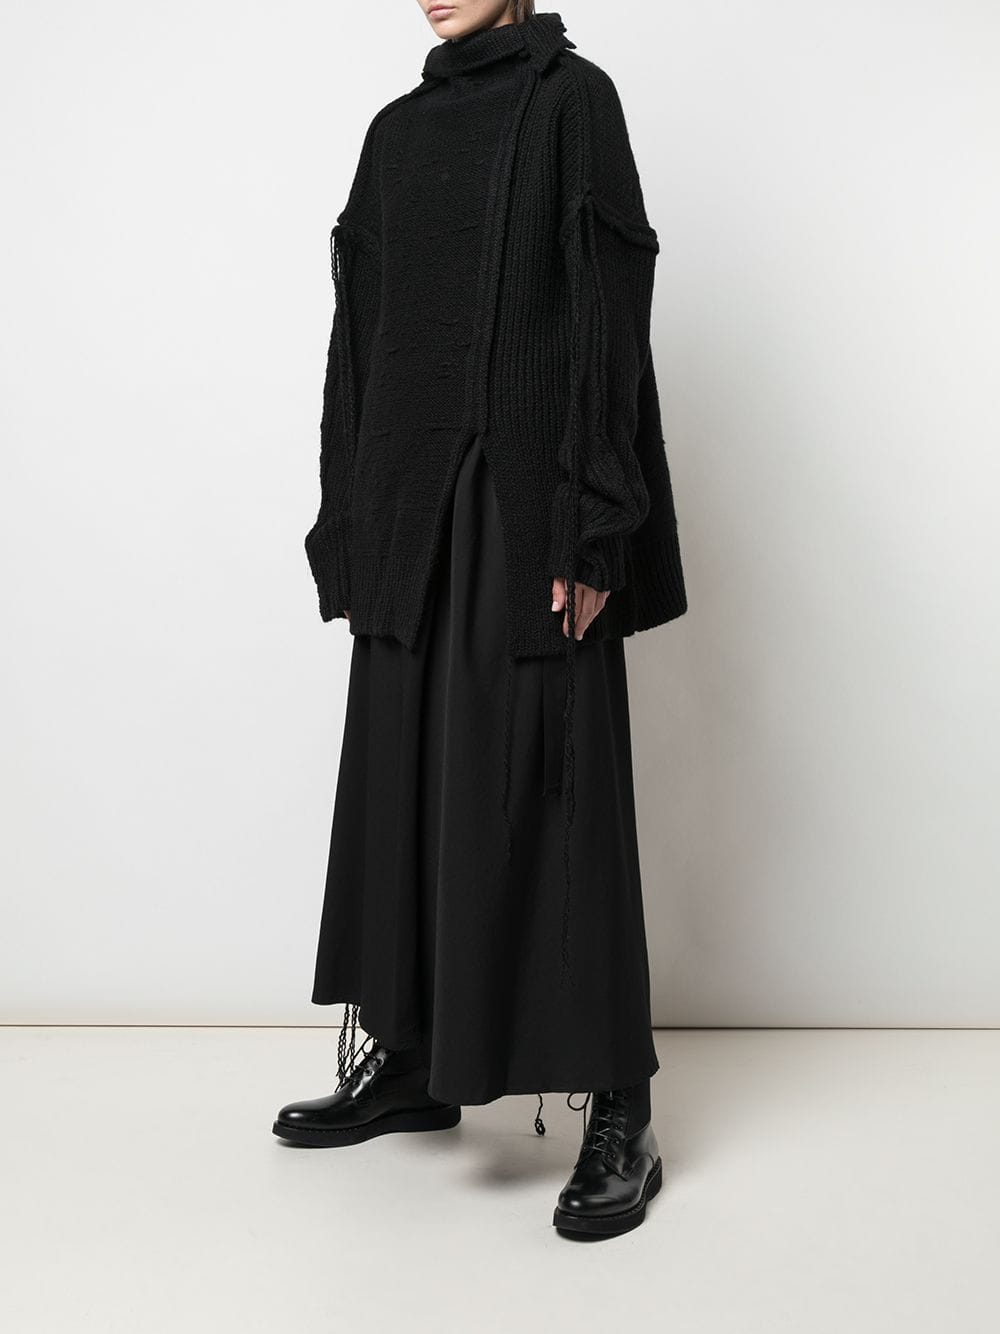 YOHJI YAMAMOTO WOMEN LOOSE YARN HIGH NECK SWEATER